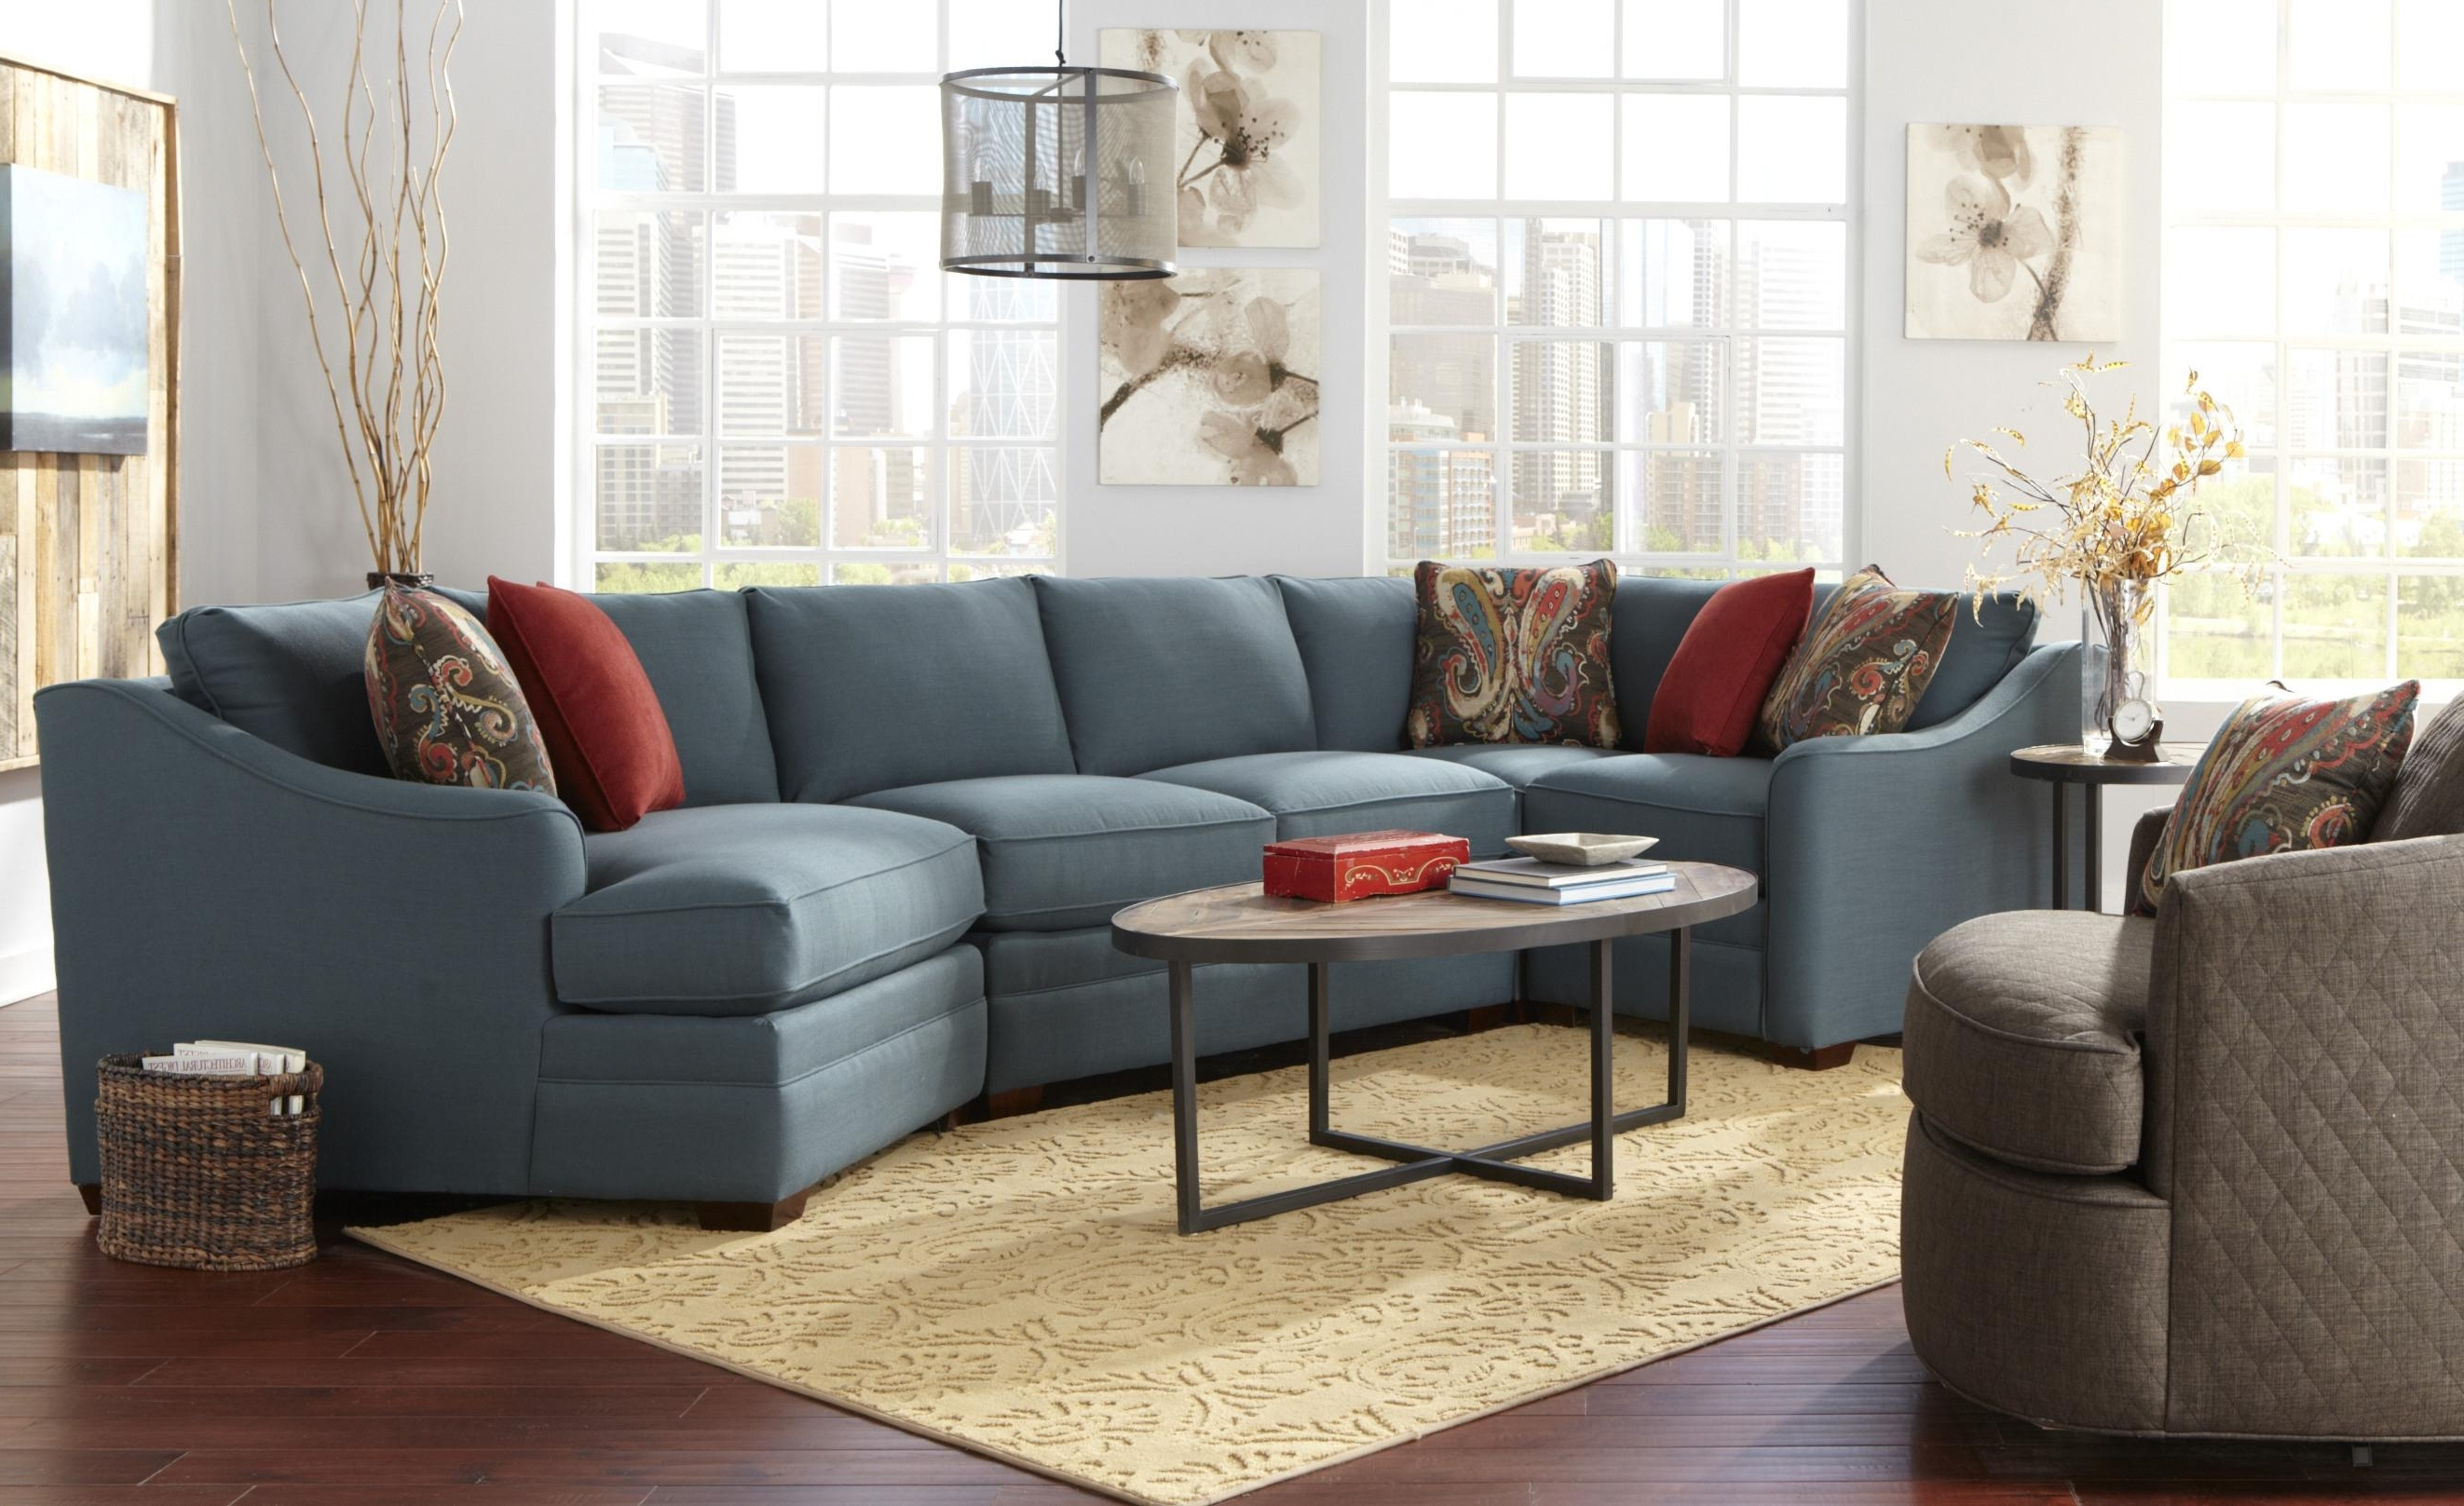 Four Piece <B>Customizable</b> Sectional Sofa With Raf Cuddler Throughout Widely Used Sectional Sofas With Cuddler (View 11 of 15)